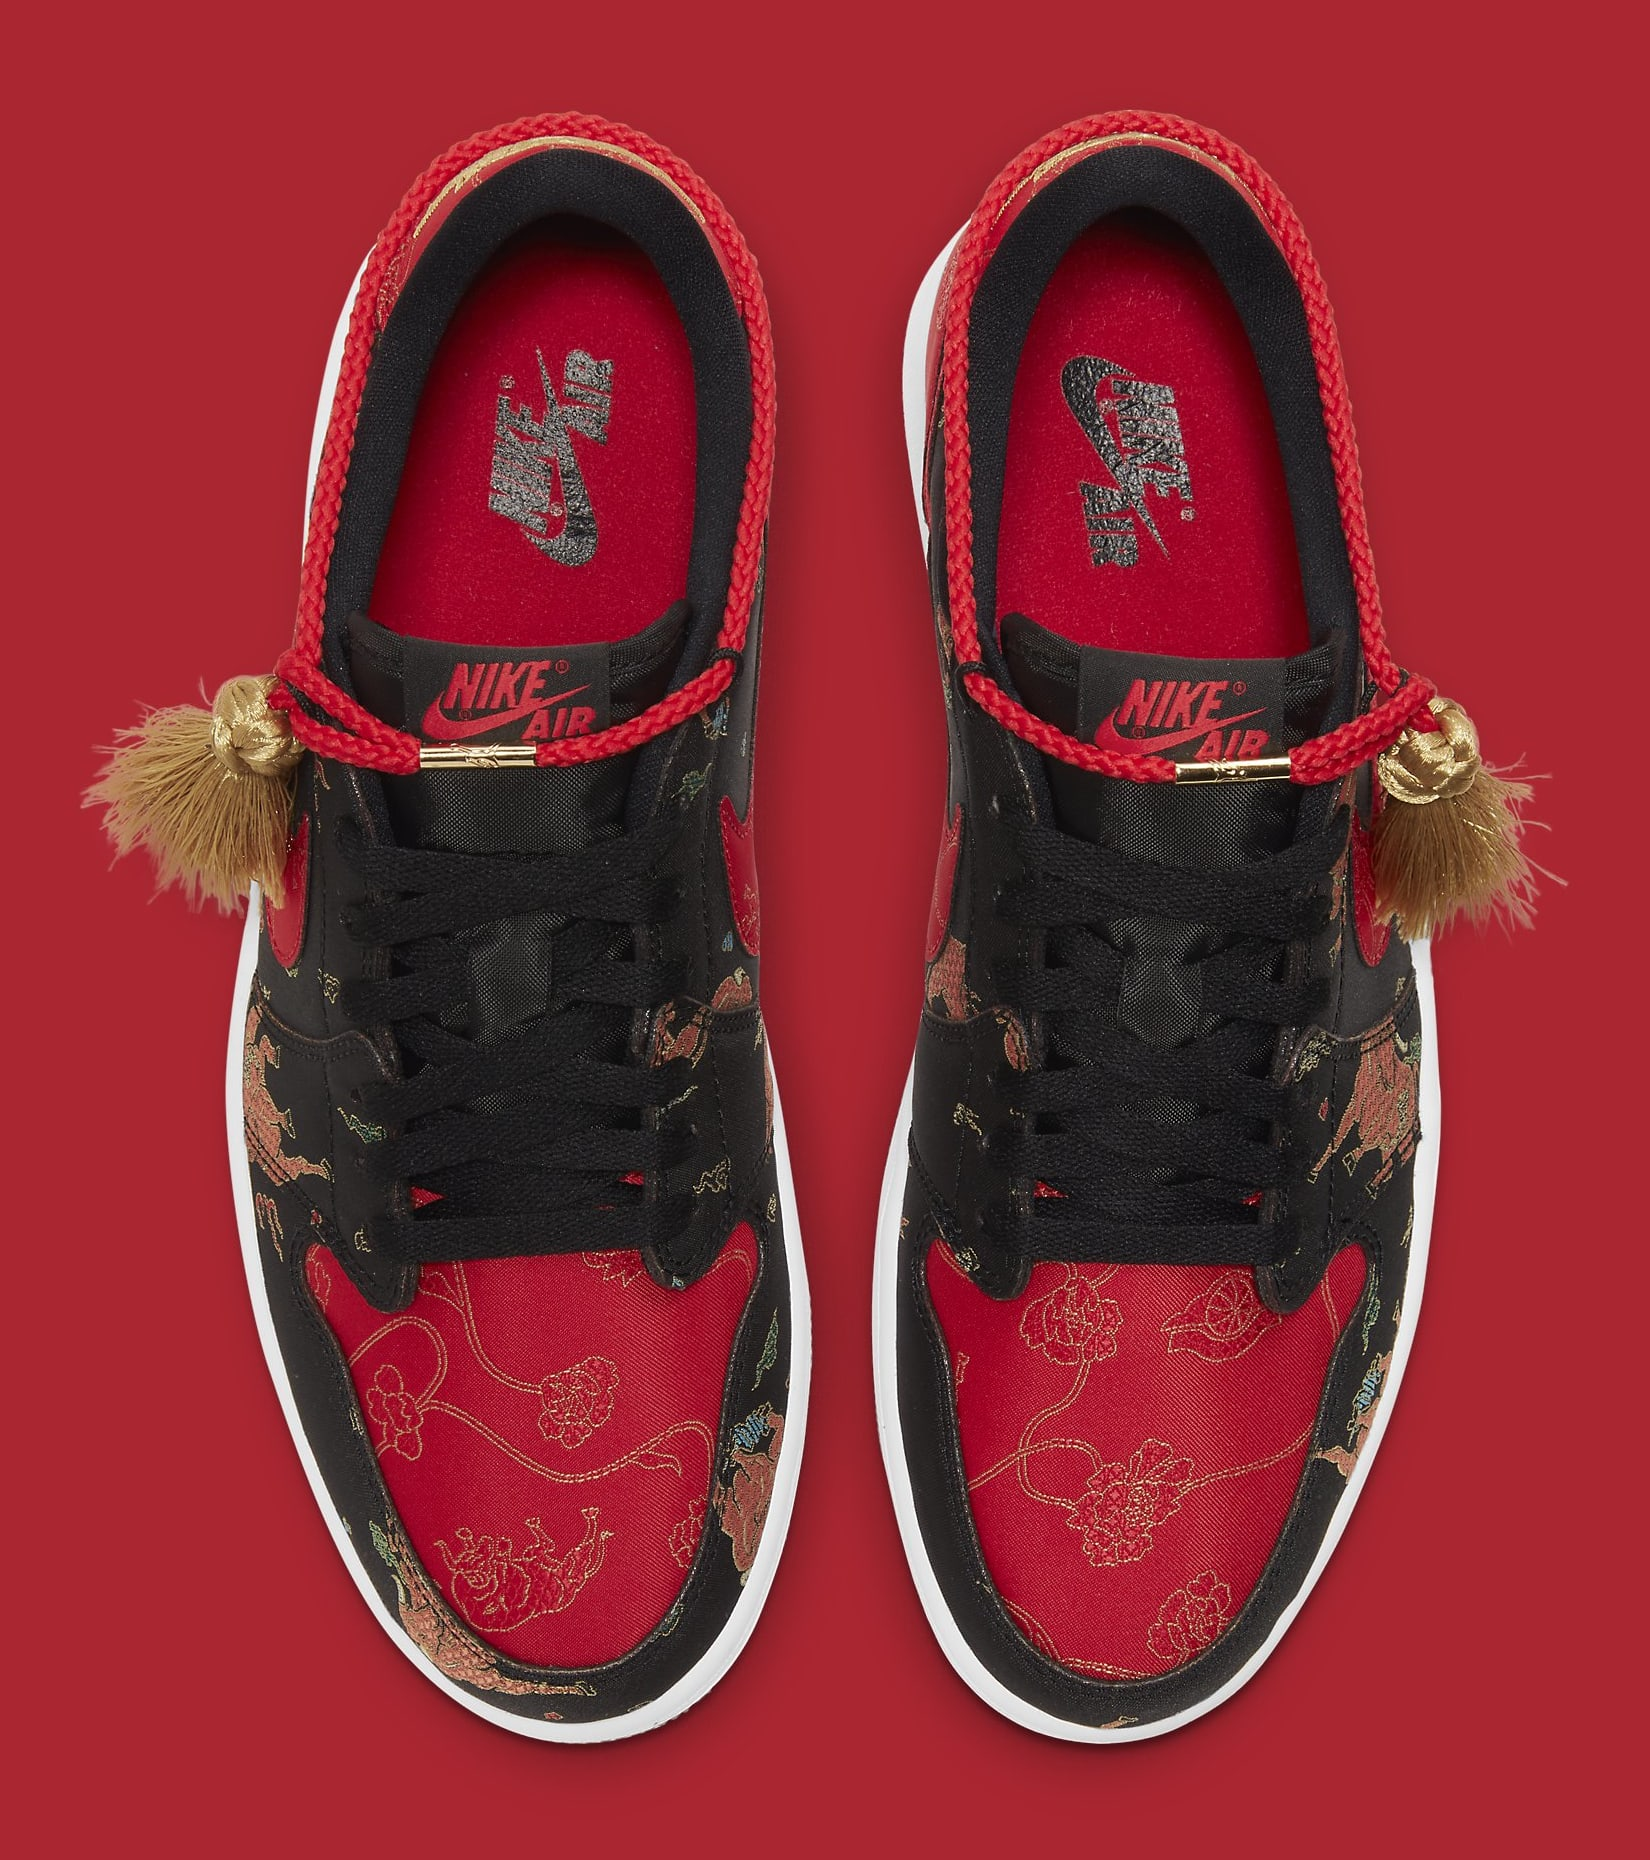 Air Jordan 1 Retro Low OG 'Chinese New Year' DD2233-001 Top